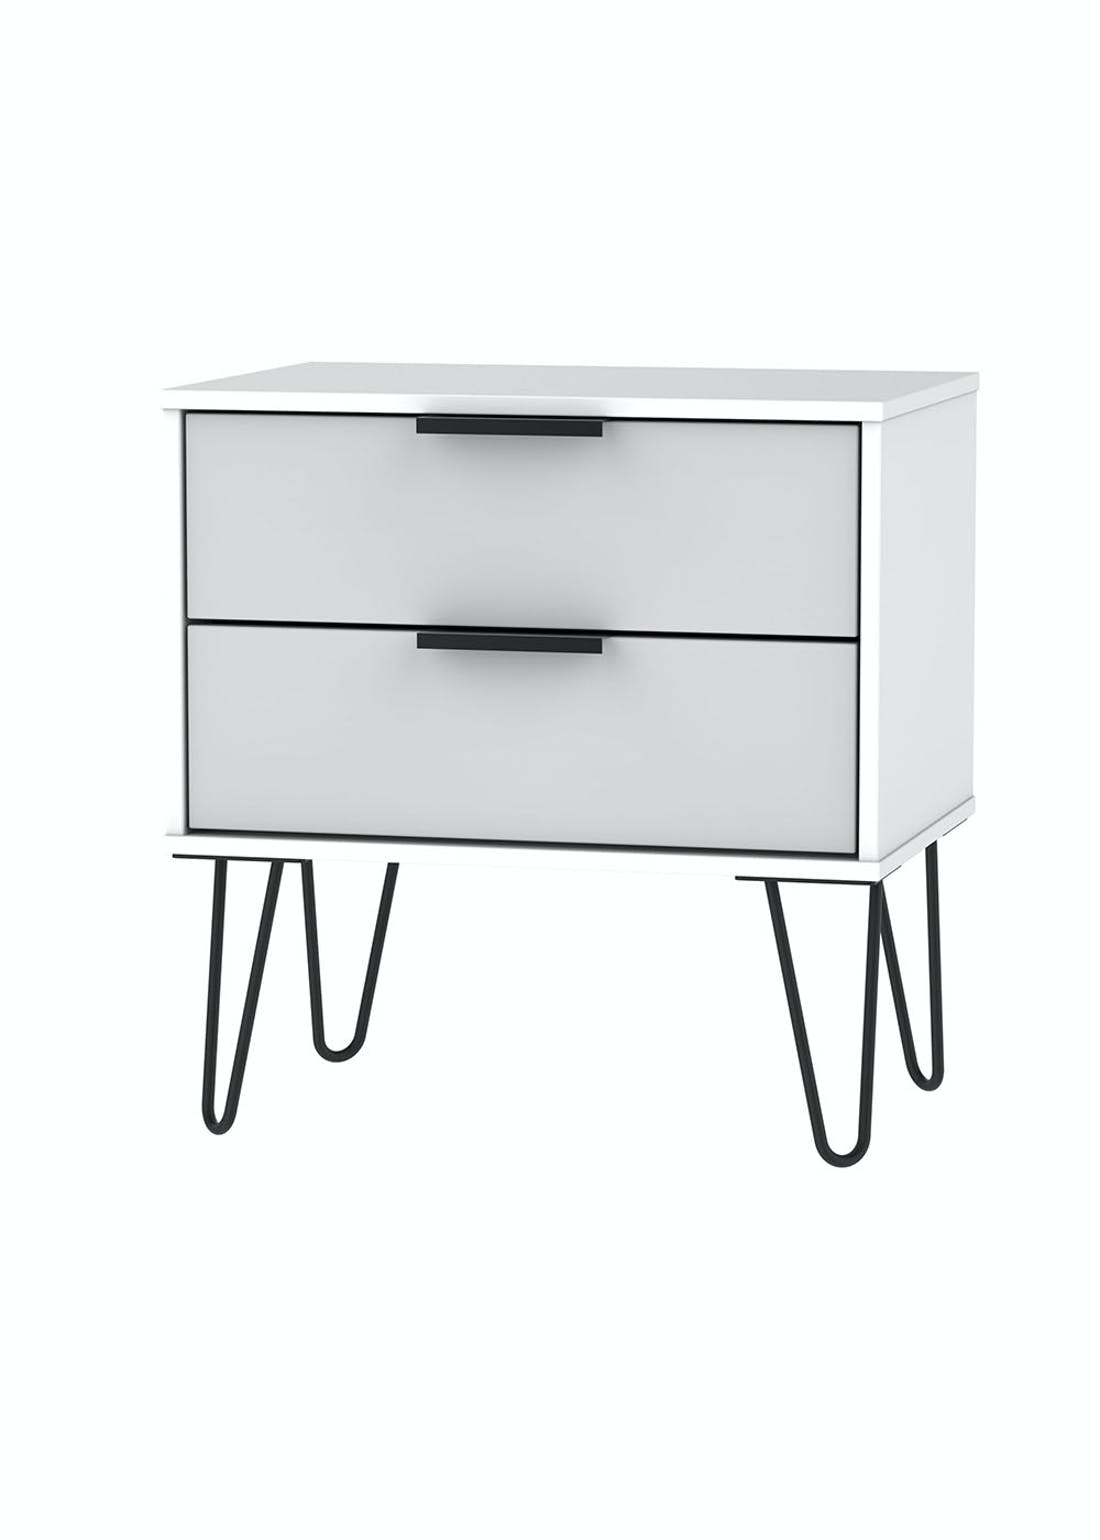 Swift Milano 2 Drawer Midi Chest (57cm x 57.5cm x 39.5cm)